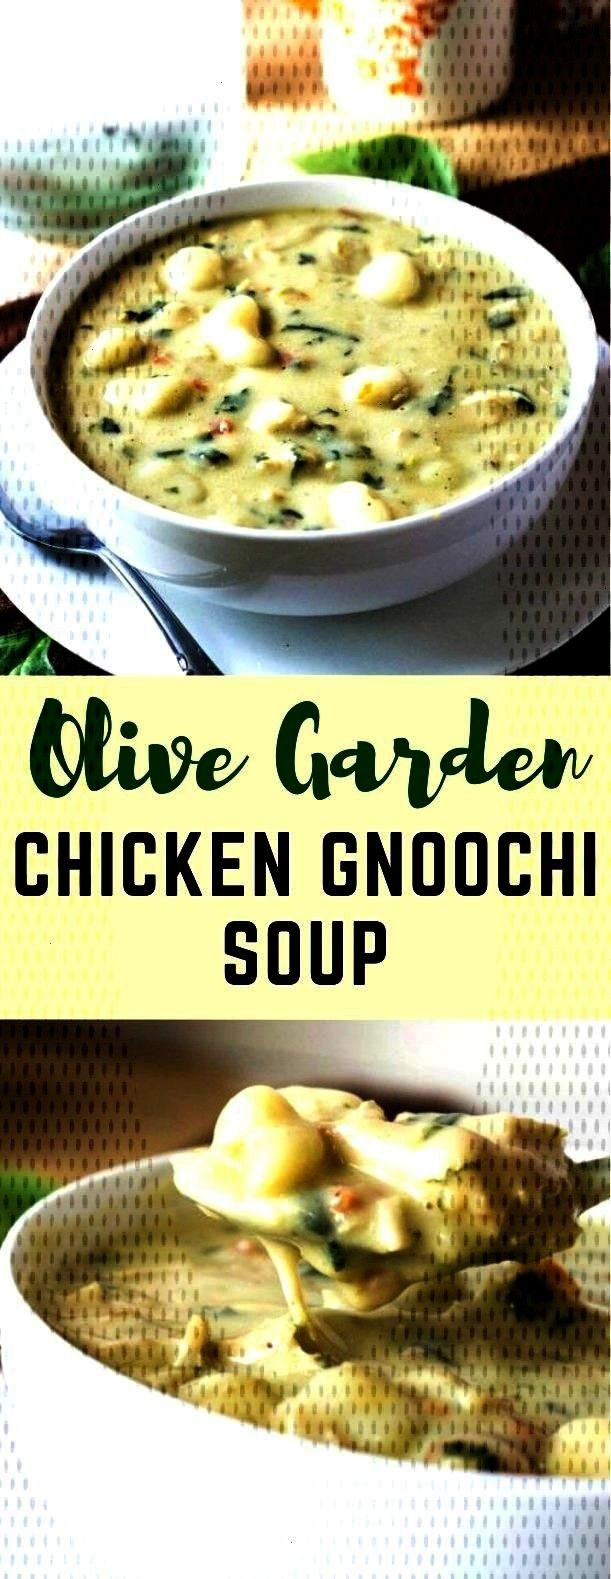 CHICOLIVE GARDEN CHIC So easy my 12 year old can do it Watch us make this delicious one pan keto meal in just a few short minutes Its one of my kids favorite low carb mea...